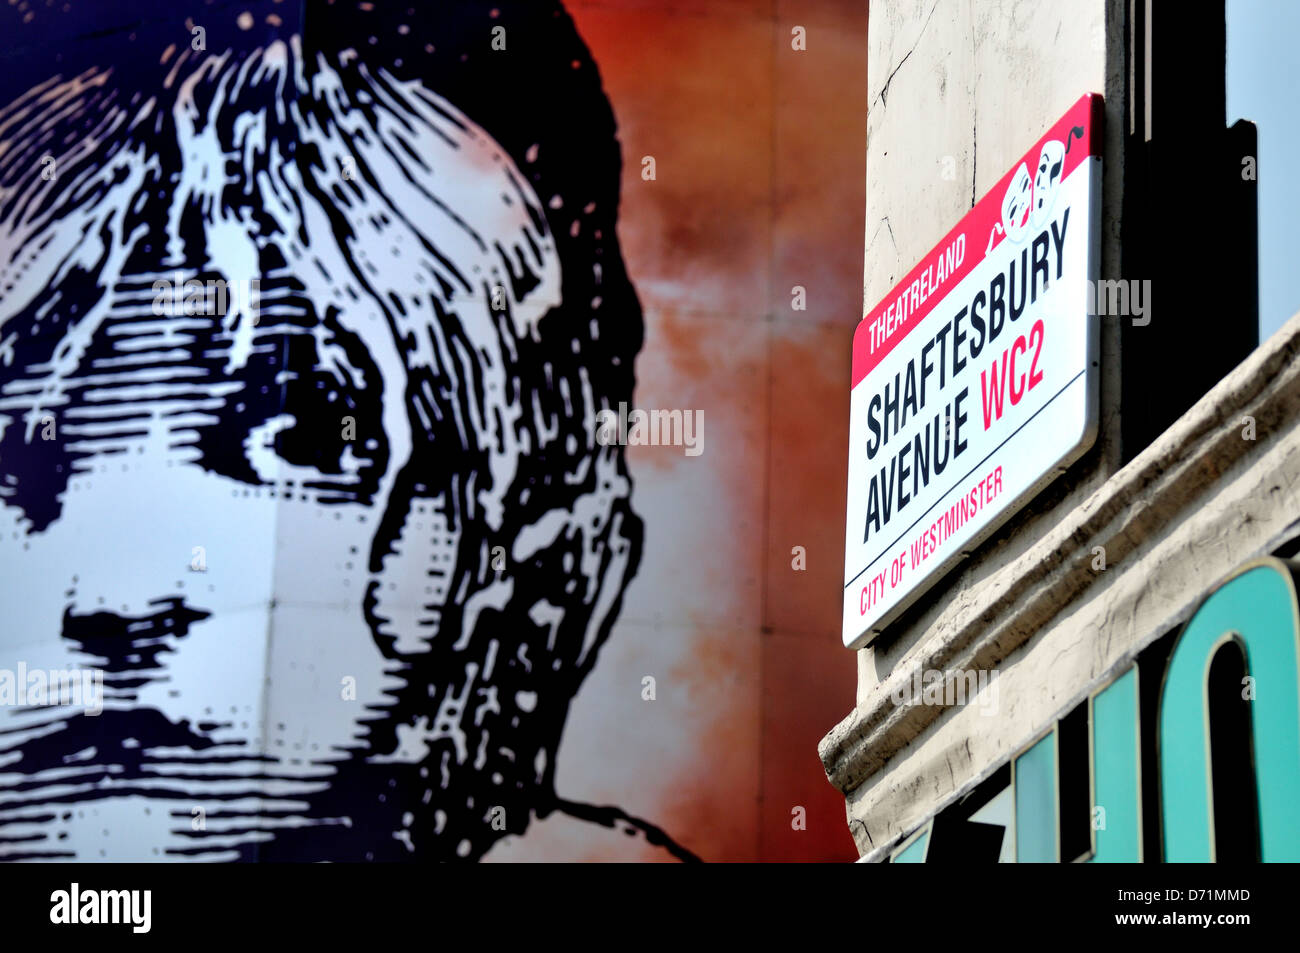 London, England, UK. Queen's Theatre on Shaftesbury Avenue - Les Miserables poster - Stock Image